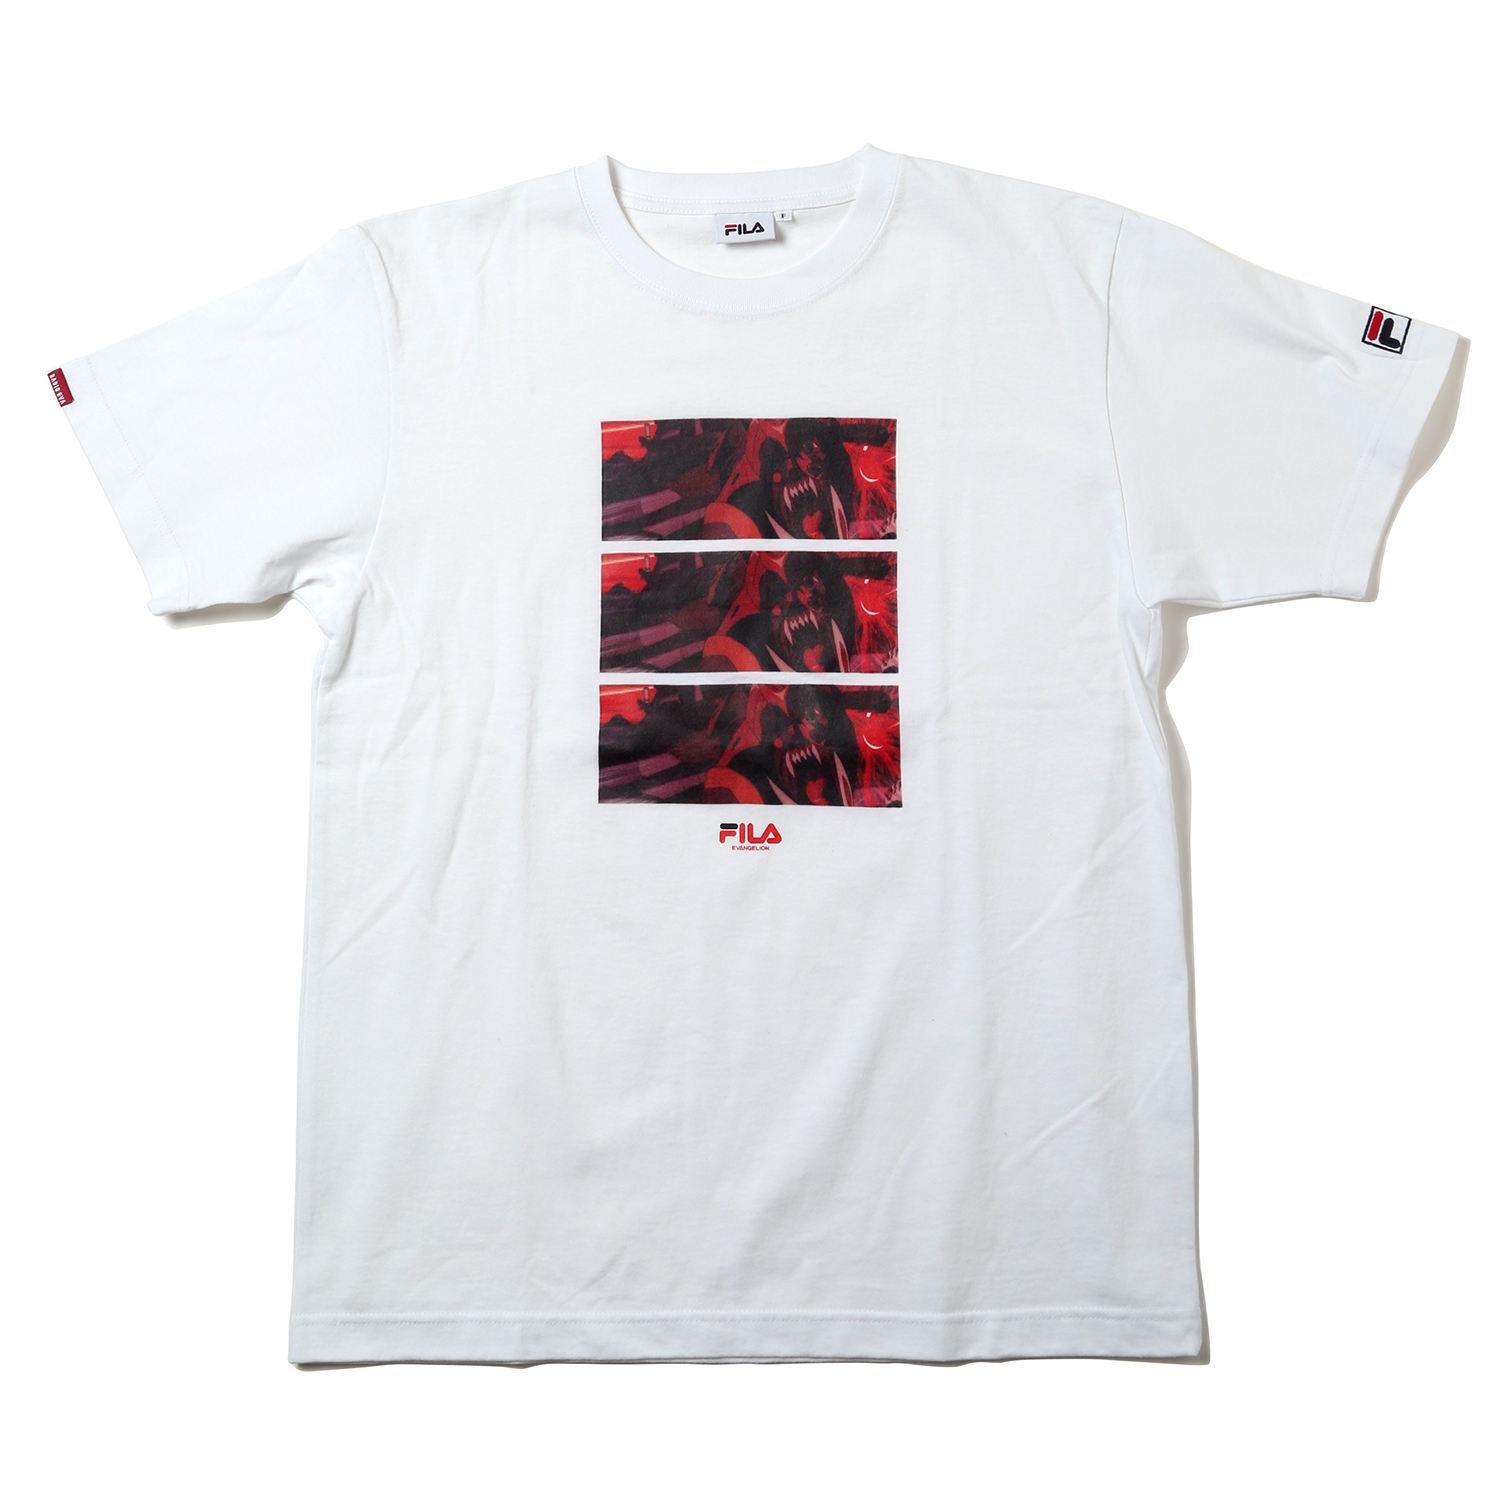 EVANGELION GRAPHIC T-Shirt by FILA (WHITE (エヴァンゲリオン 2号機 獣化第4形態(第2種))